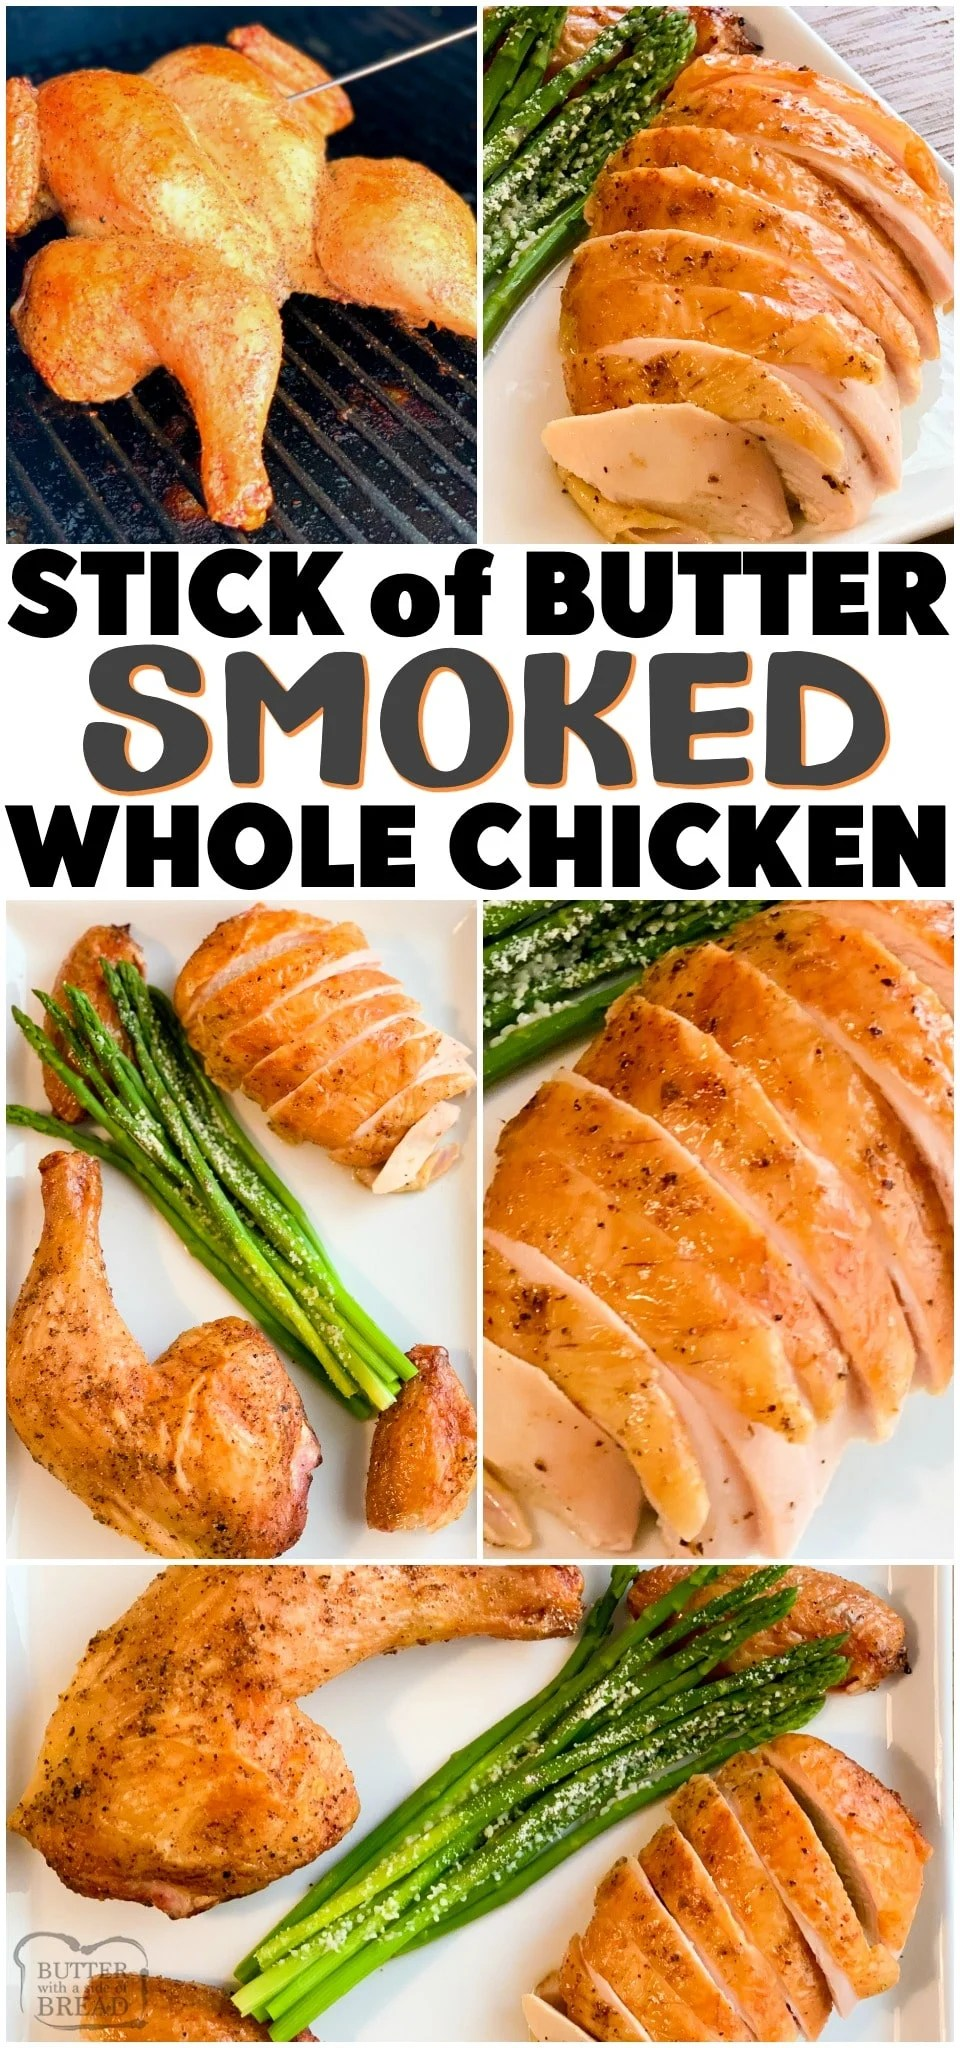 Butter Smoked Whole Chicken that's moist and super flavorful! Spatchcocked chicken cooked in a smoker, brushed with a stick of melted butter and fresh herbs for a perfect whole chicken dinner. #smokedchicken #chicken #butter #grilling #easydinner #dinnerrecipe #chickendinner #smoked #recipe from BUTTER WITH A SIDE OF BREAD